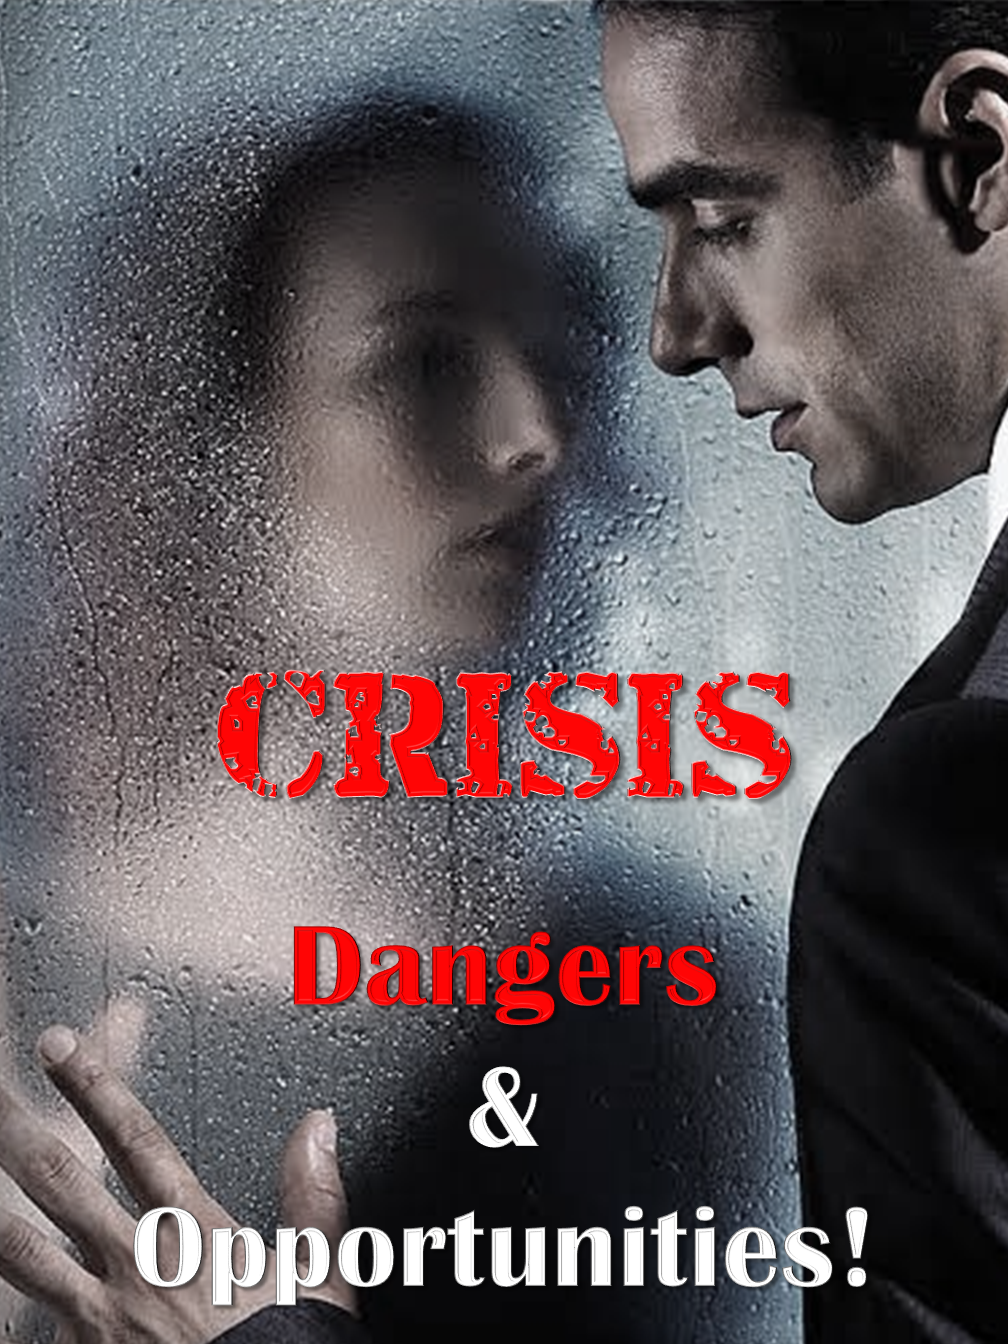 Crisis: Dangers & Opportunities!